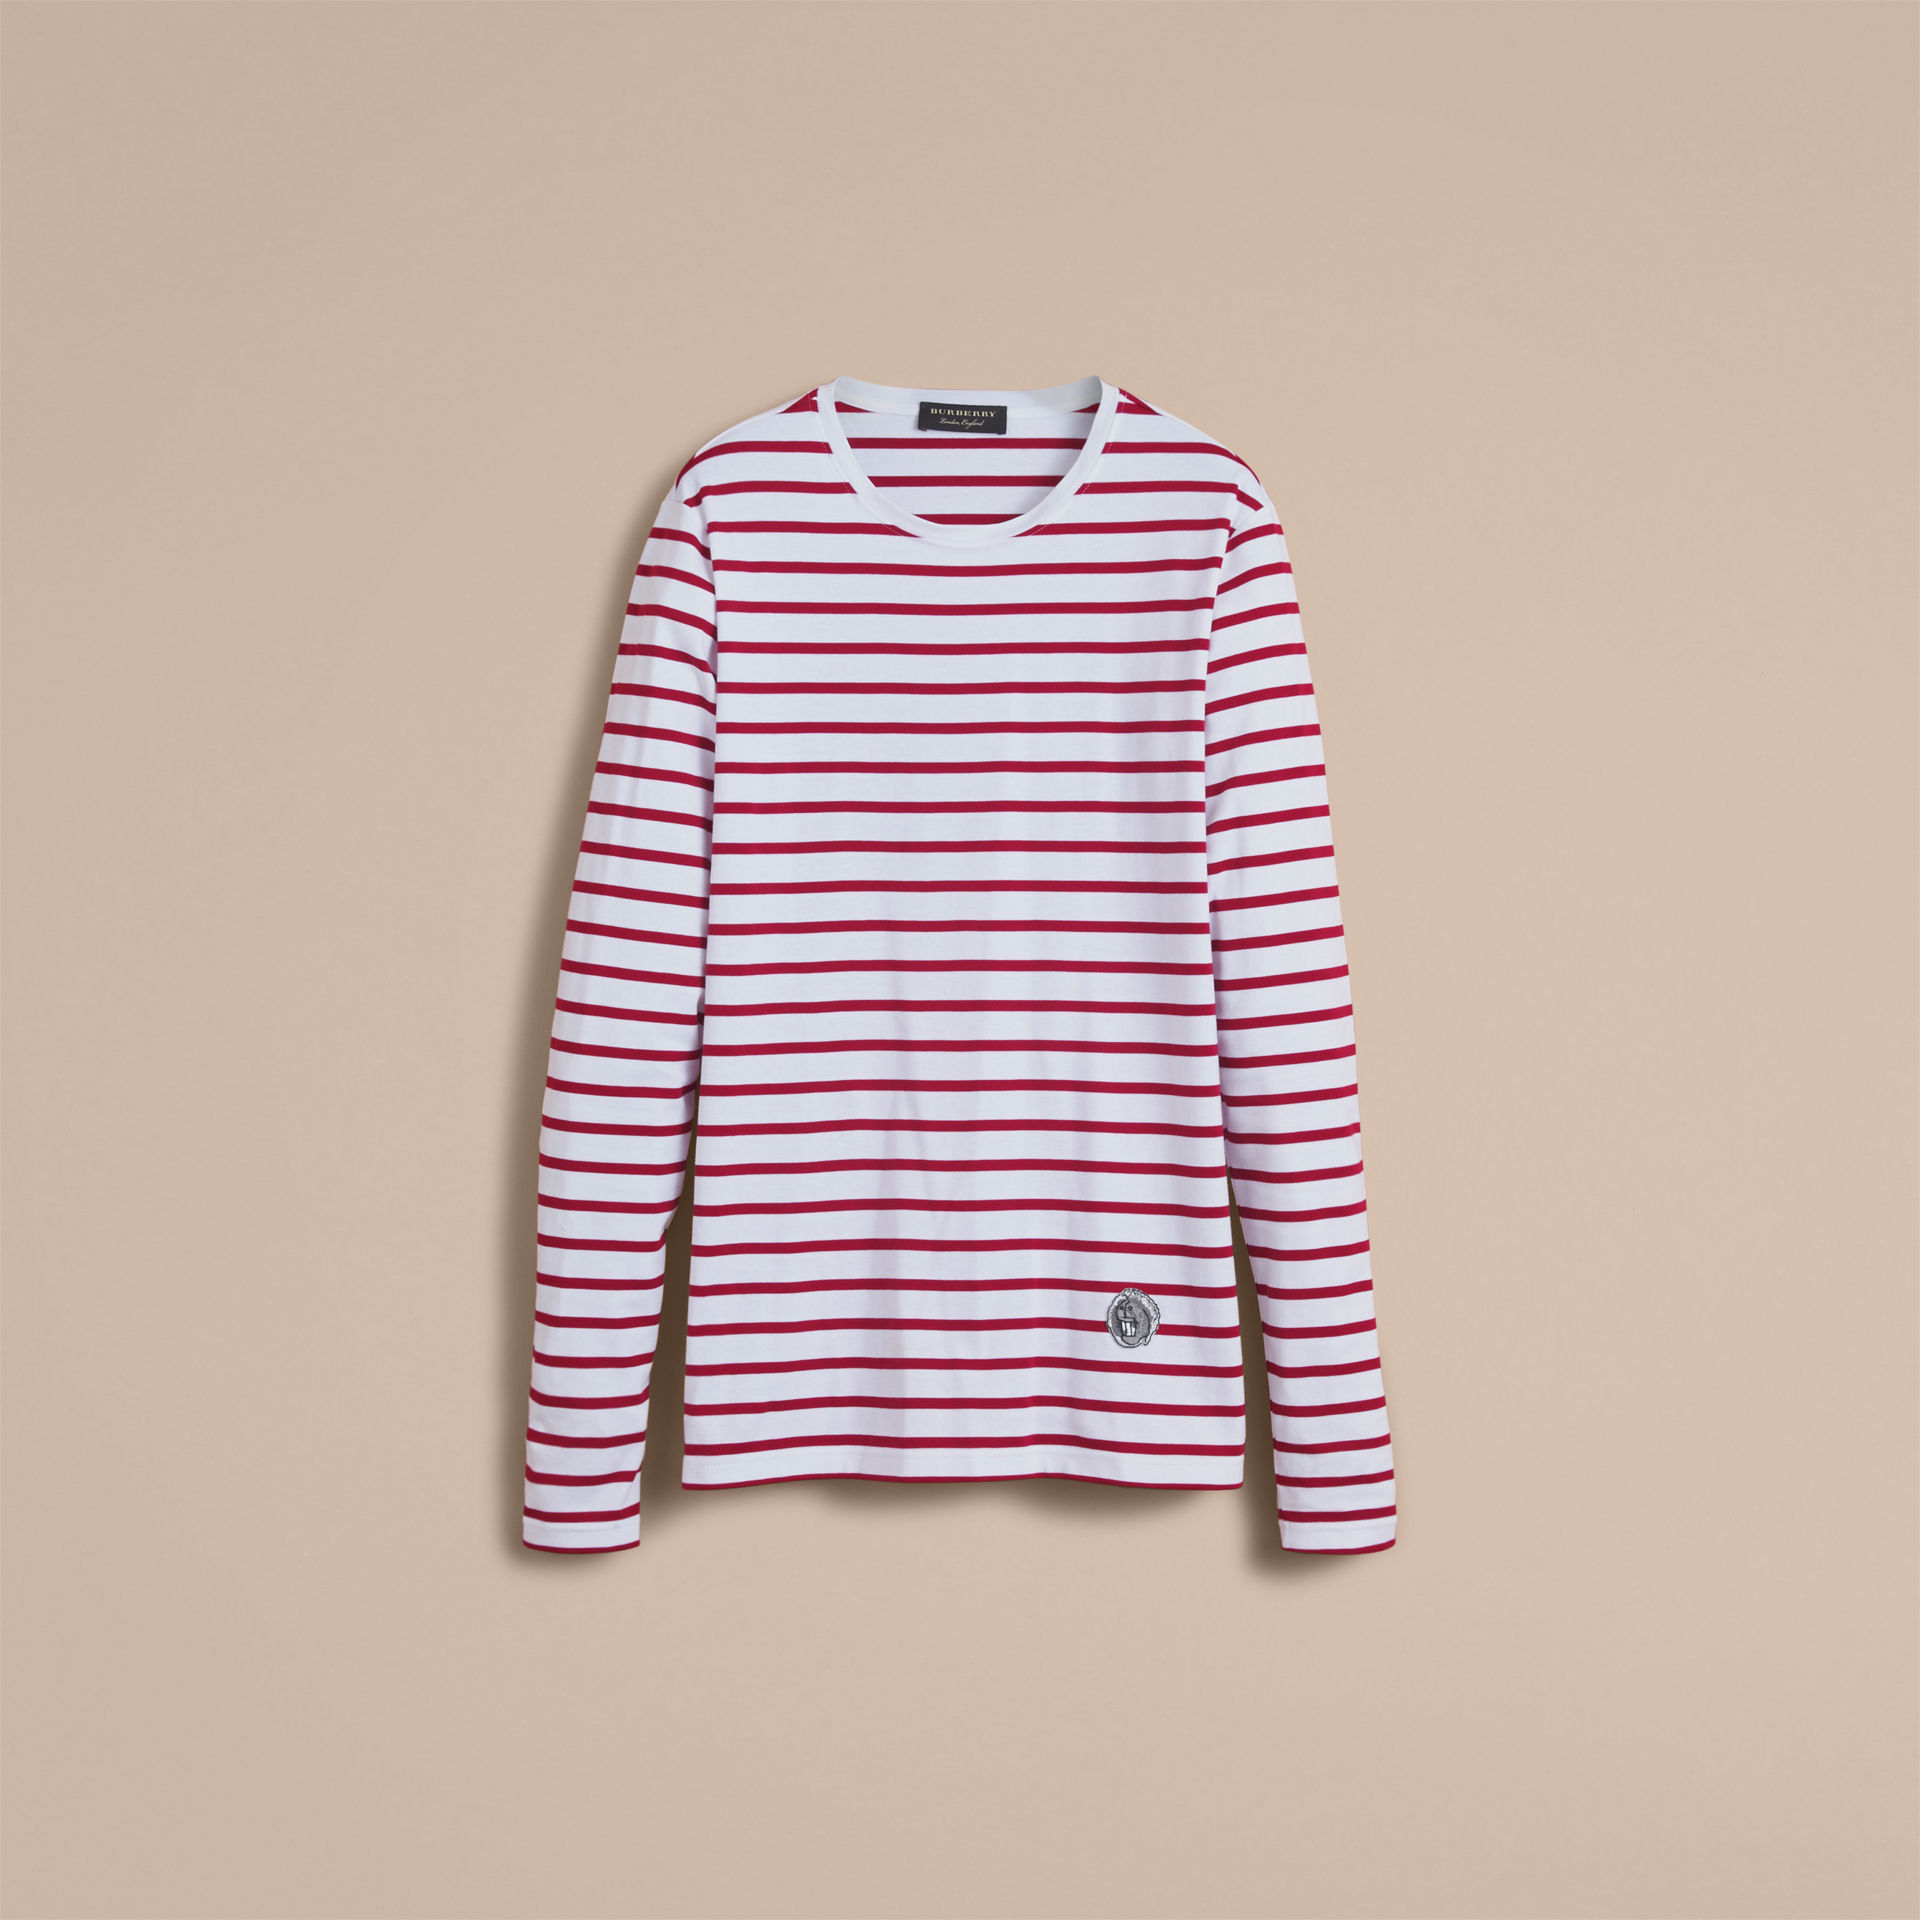 Burberry Parade Red Unisex Pallas Heads Motif Breton Stripe Cotton Top